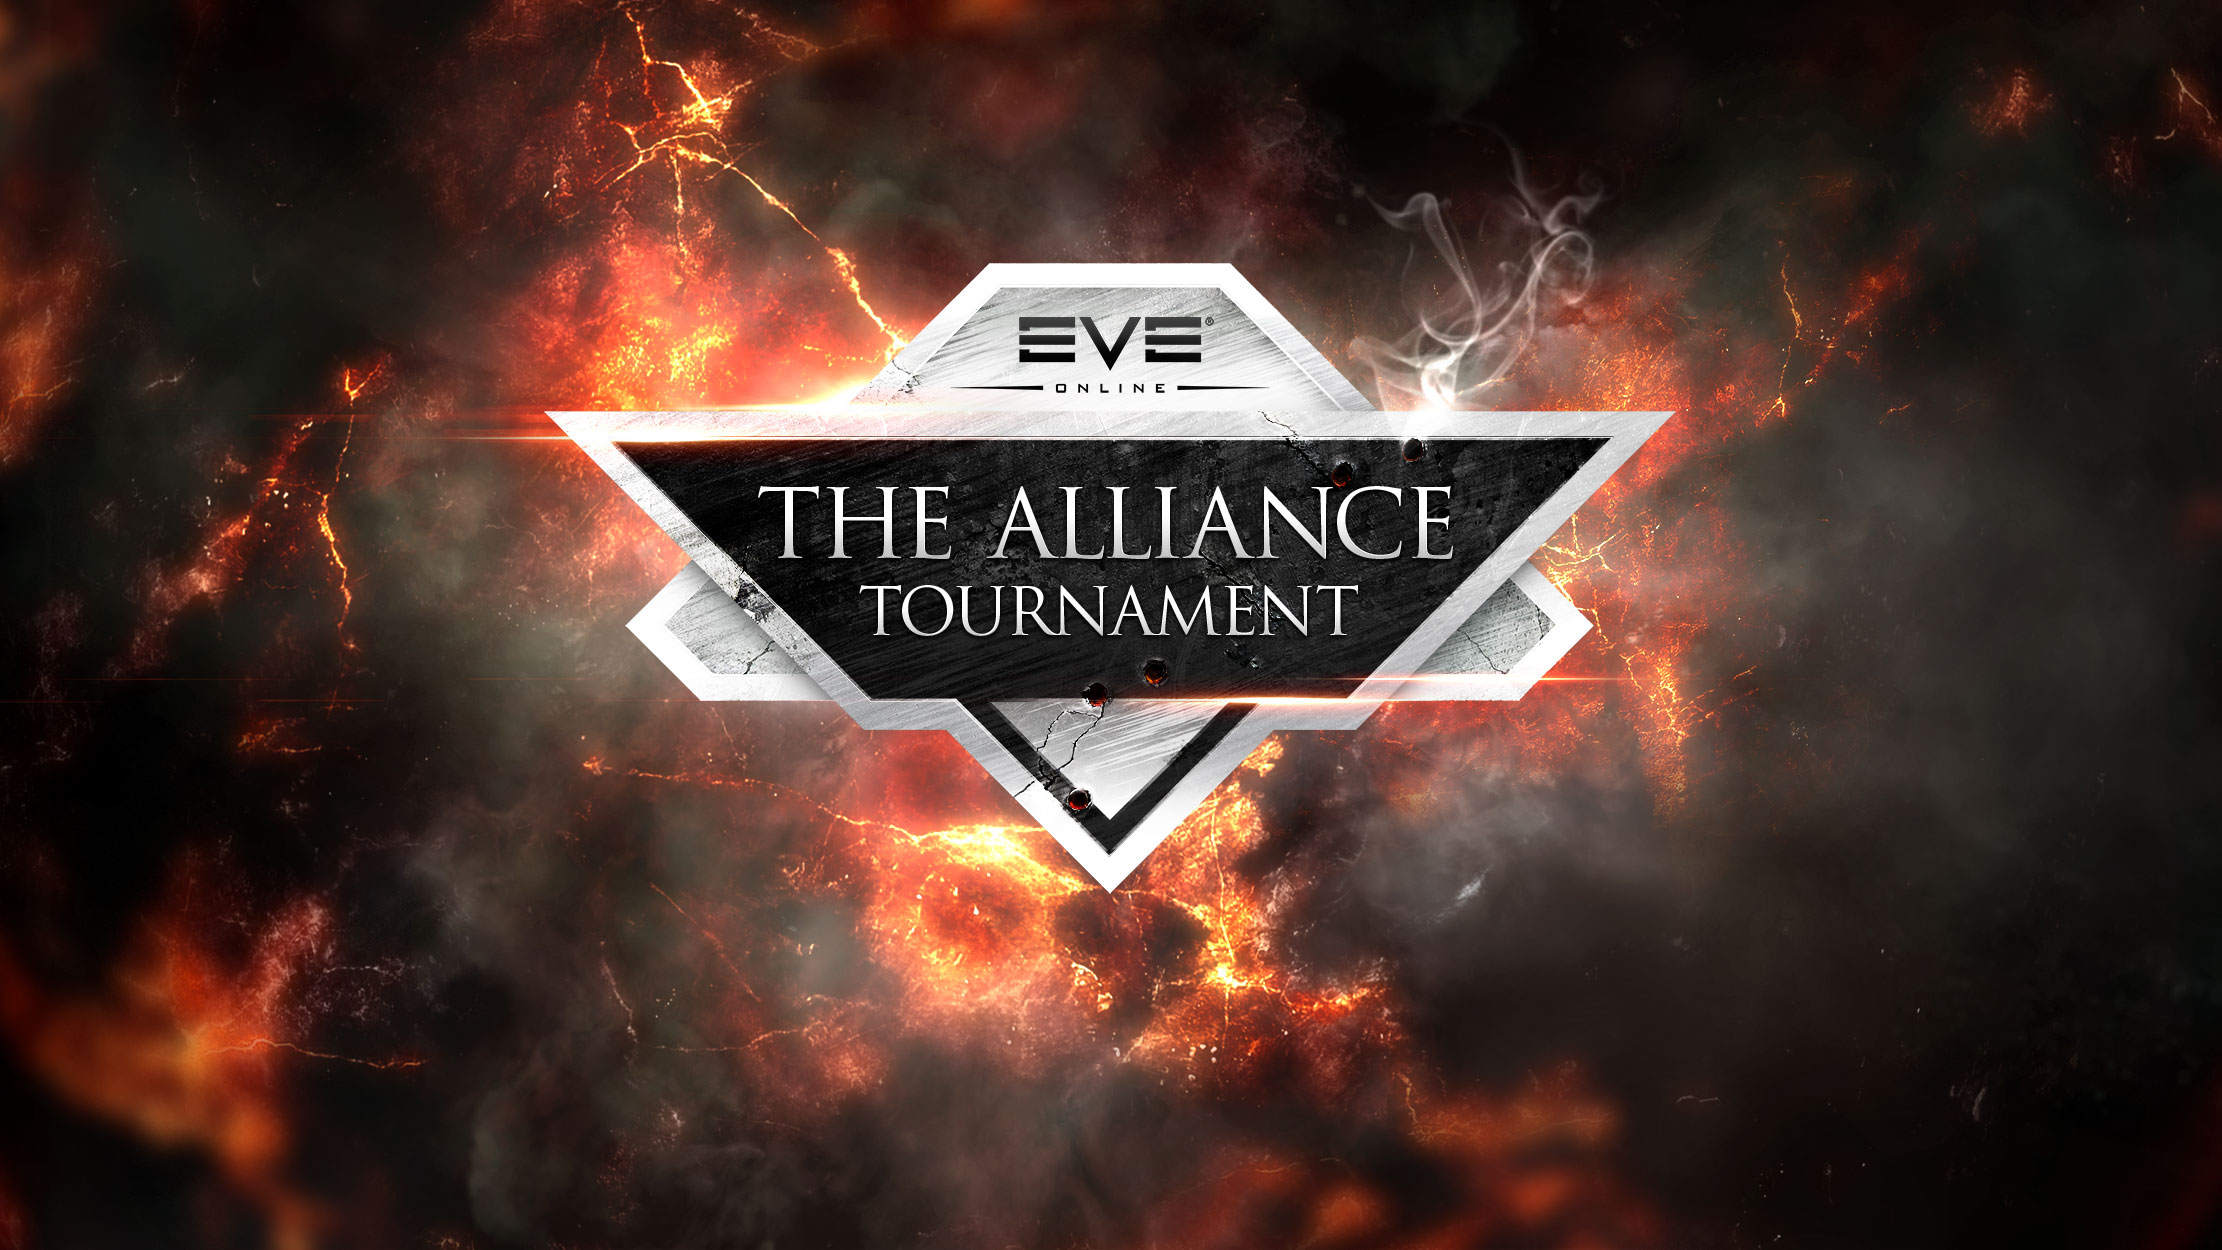 Eve online tournament betting tv sports personality betting on sports